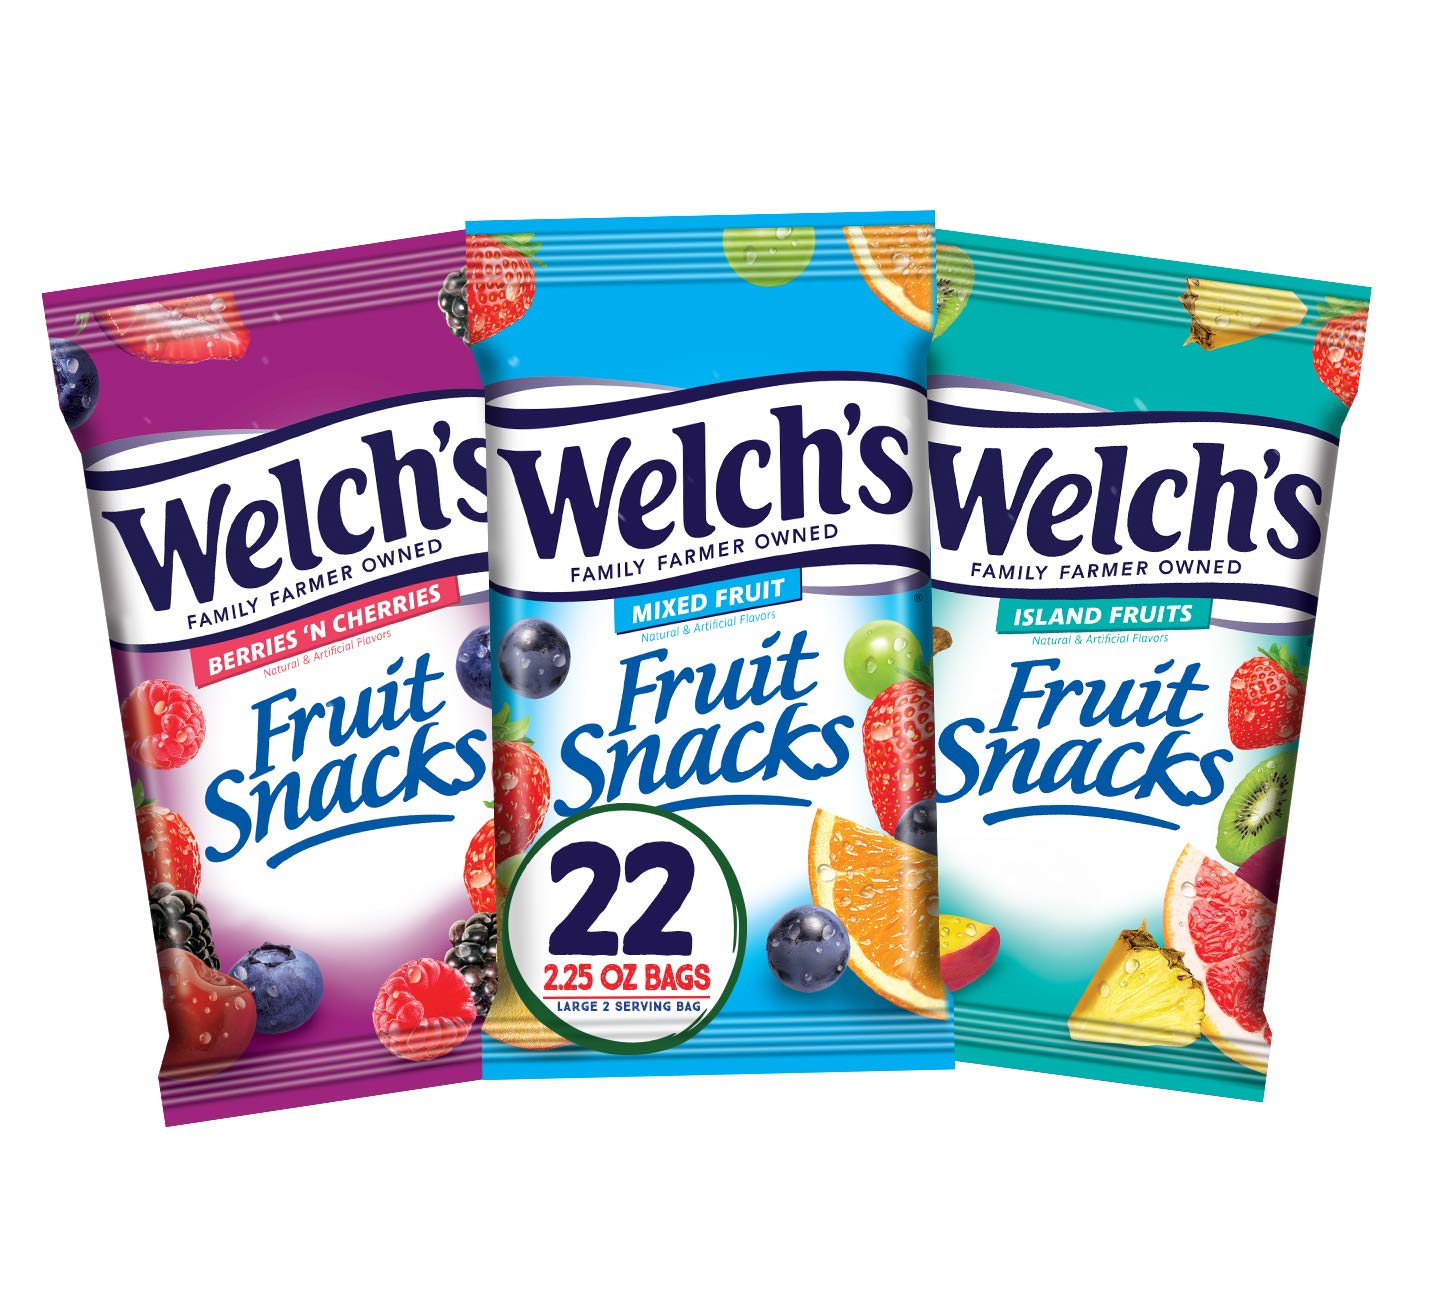 Welch's Fruit Snacks, Variety Pack with Mixed Fruit, Island Fruits & Berries 'n Cherries, Gluten Free, 2.25 oz Bags (Pack of 22)